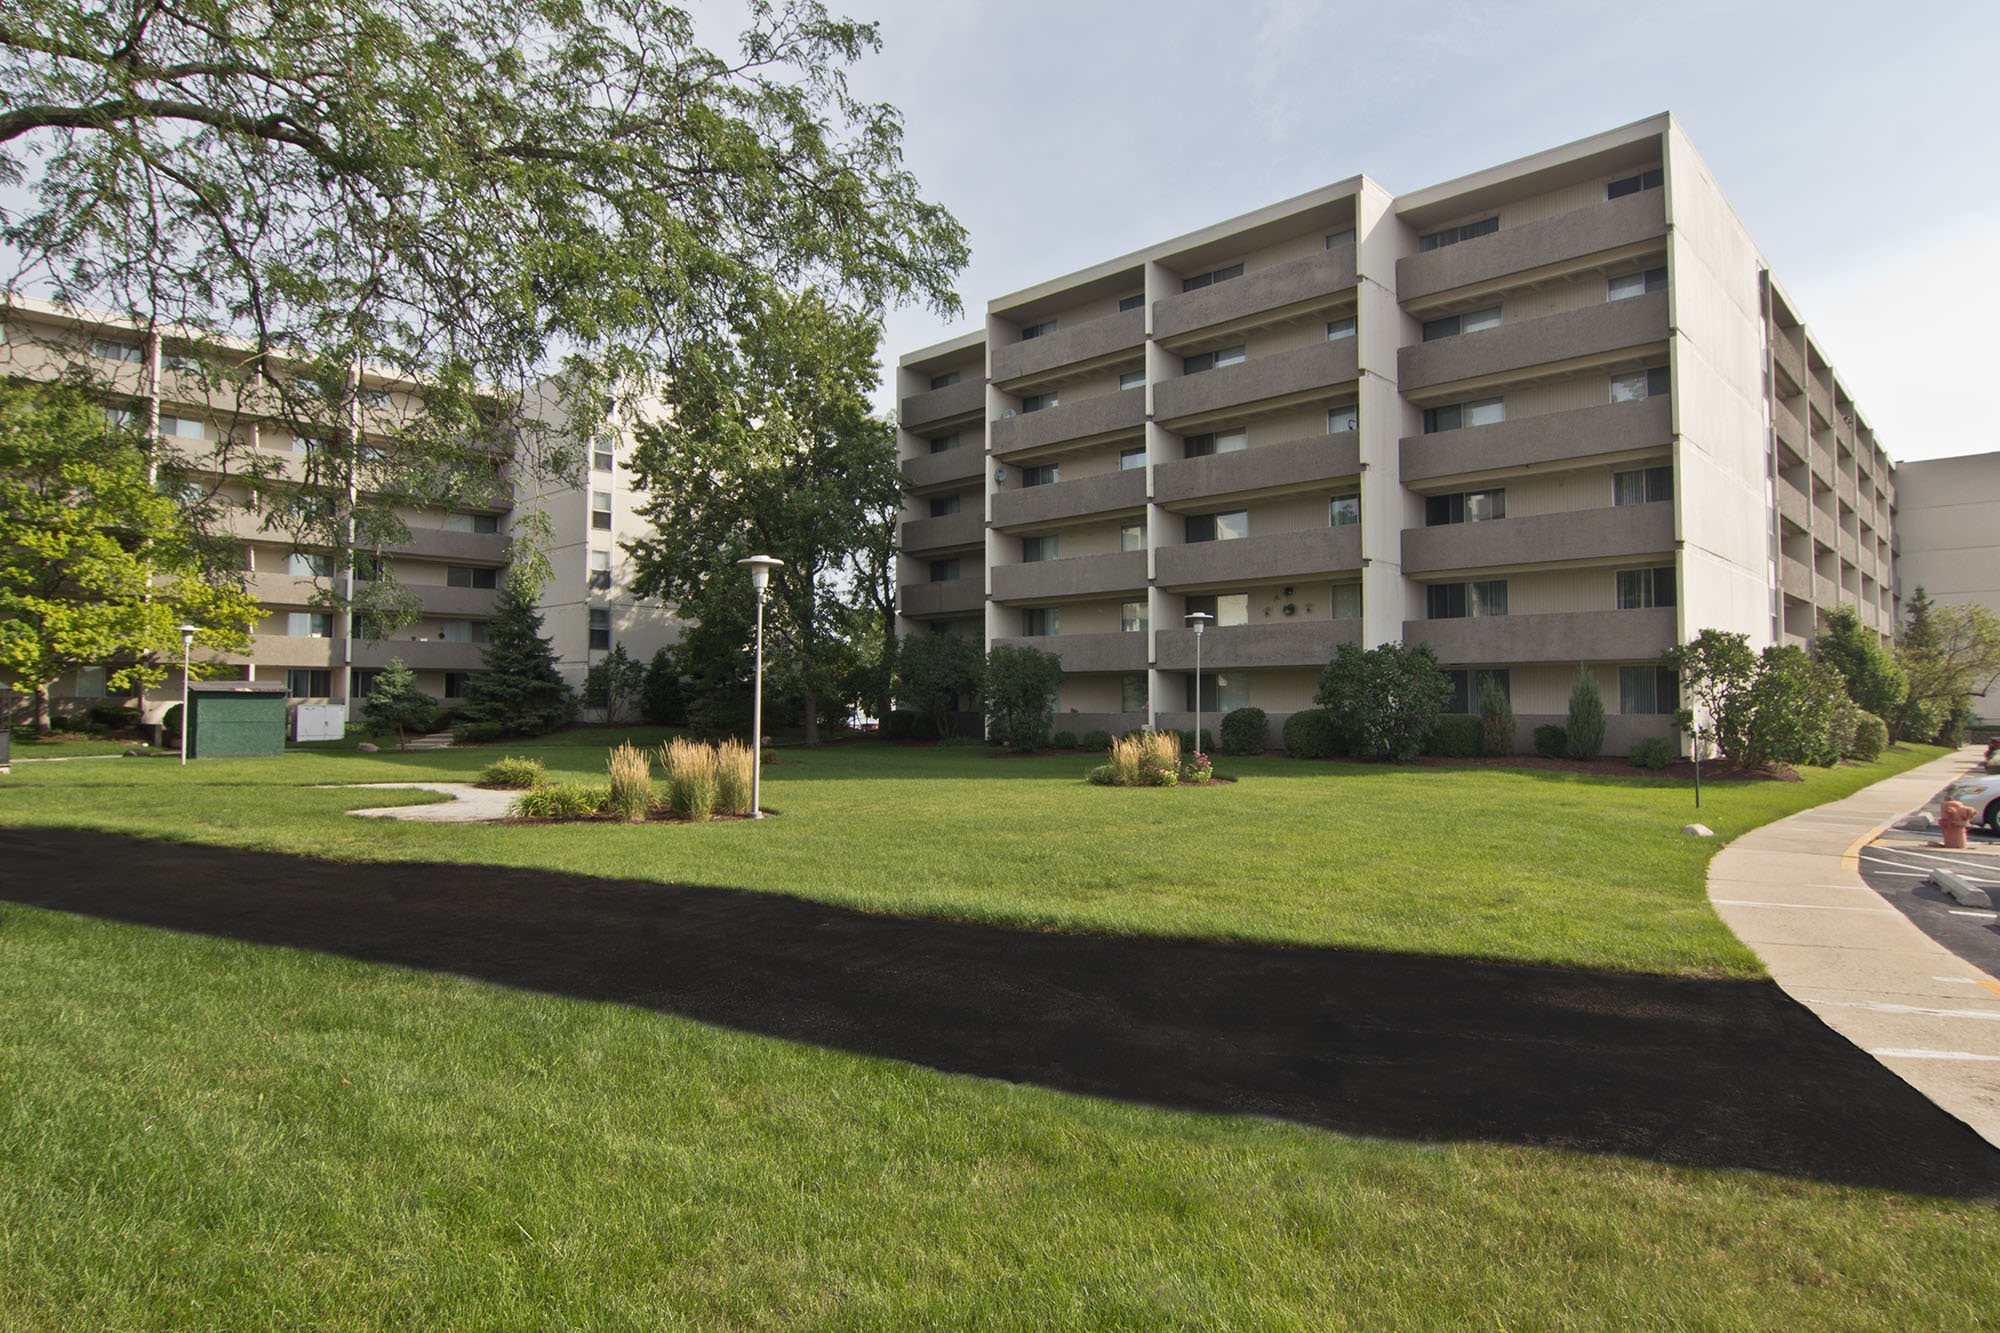 Apartments in Richton Park, IL